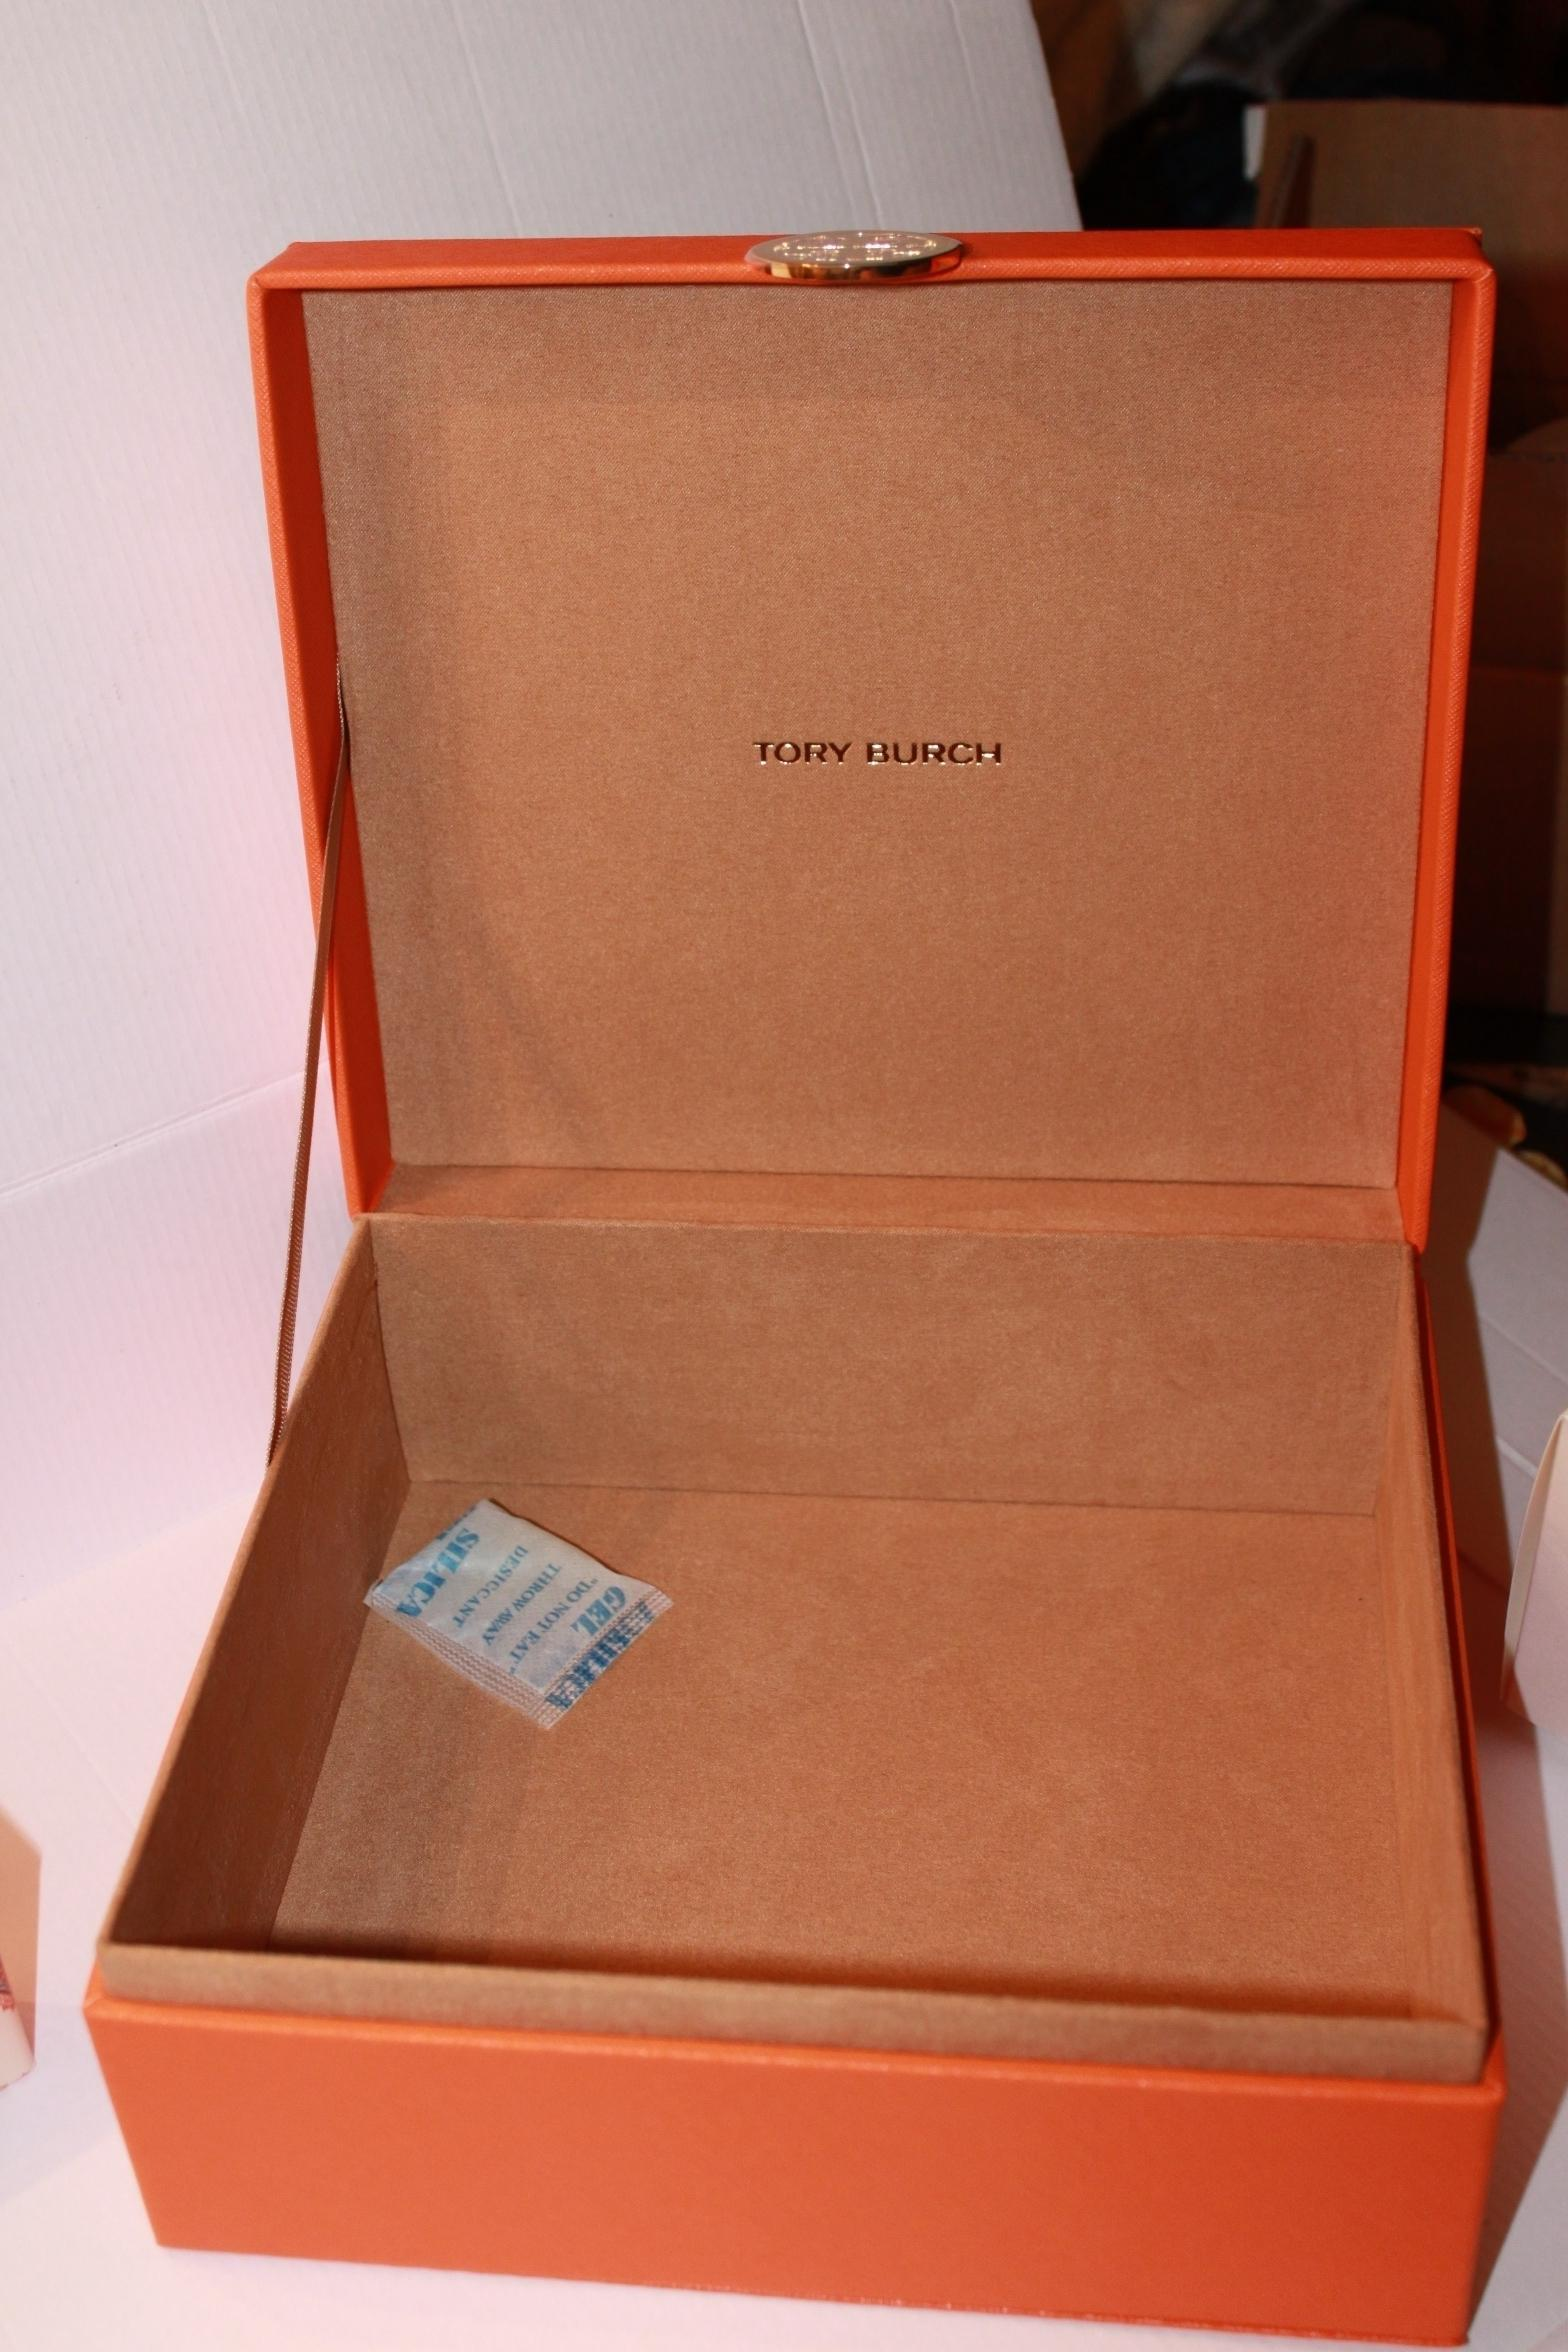 Tory Burch Orange Jewelry and Keepsake Box Tradesy